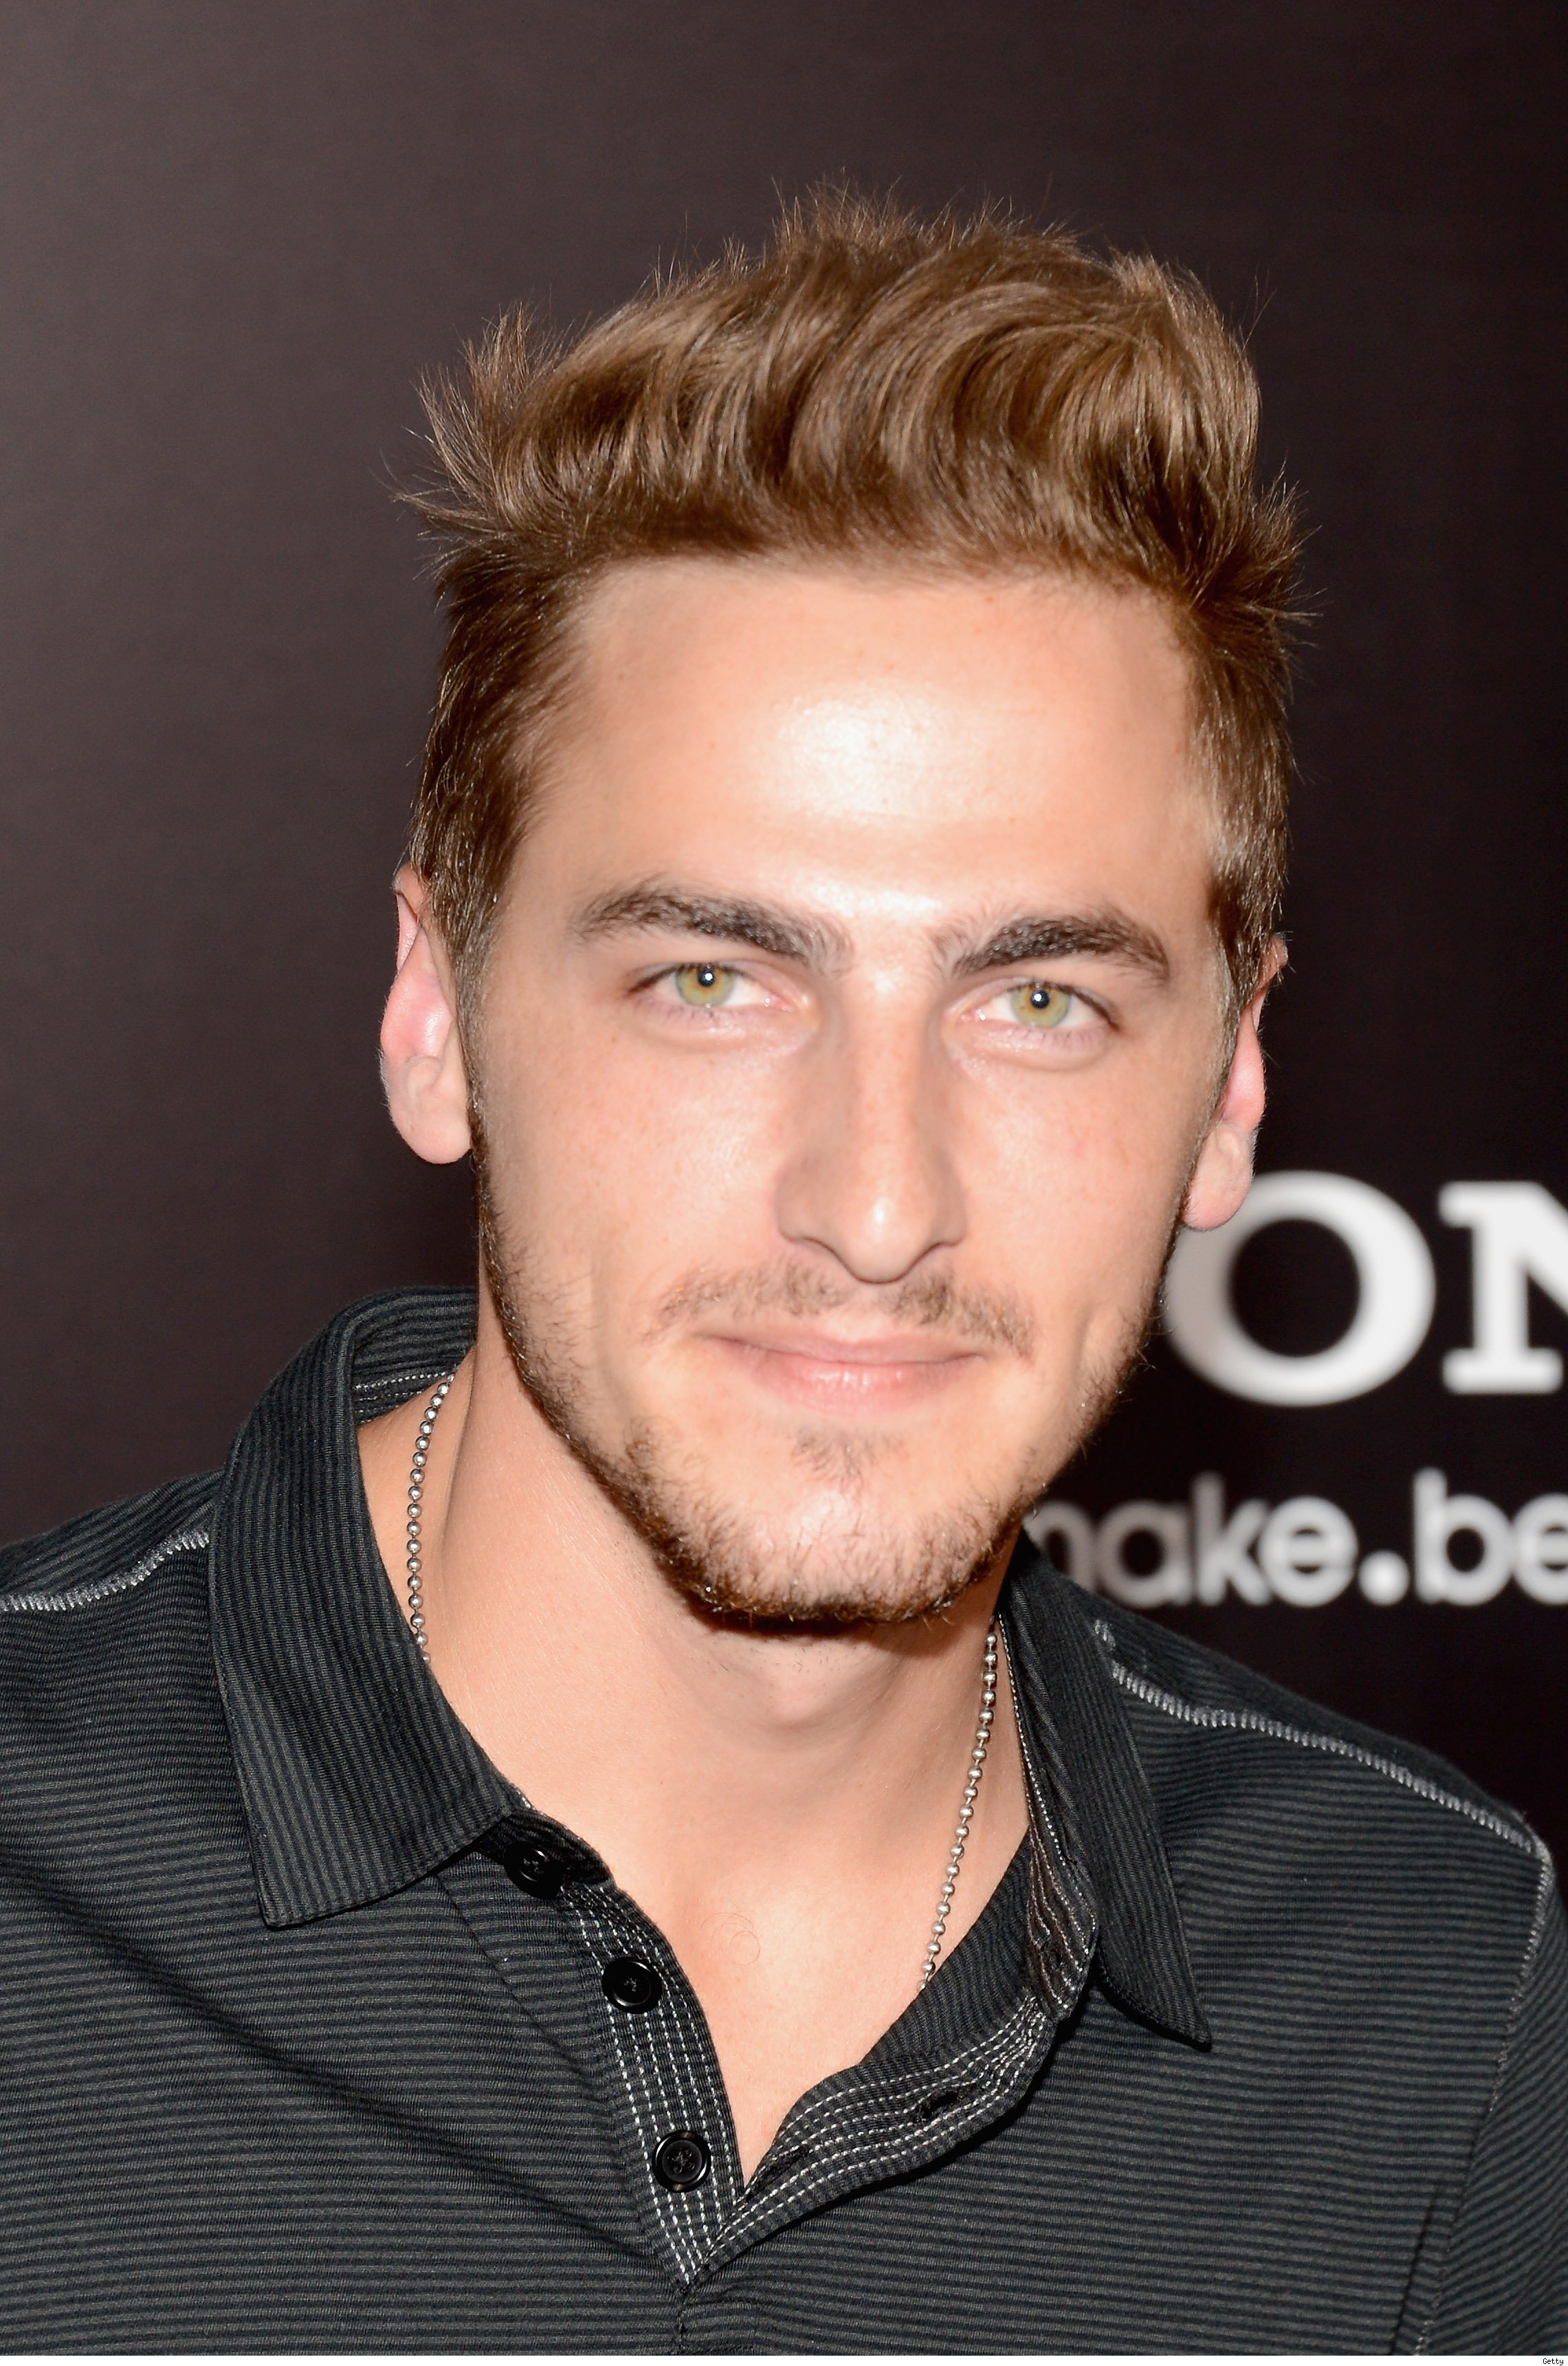 kendall schmidt cover girl